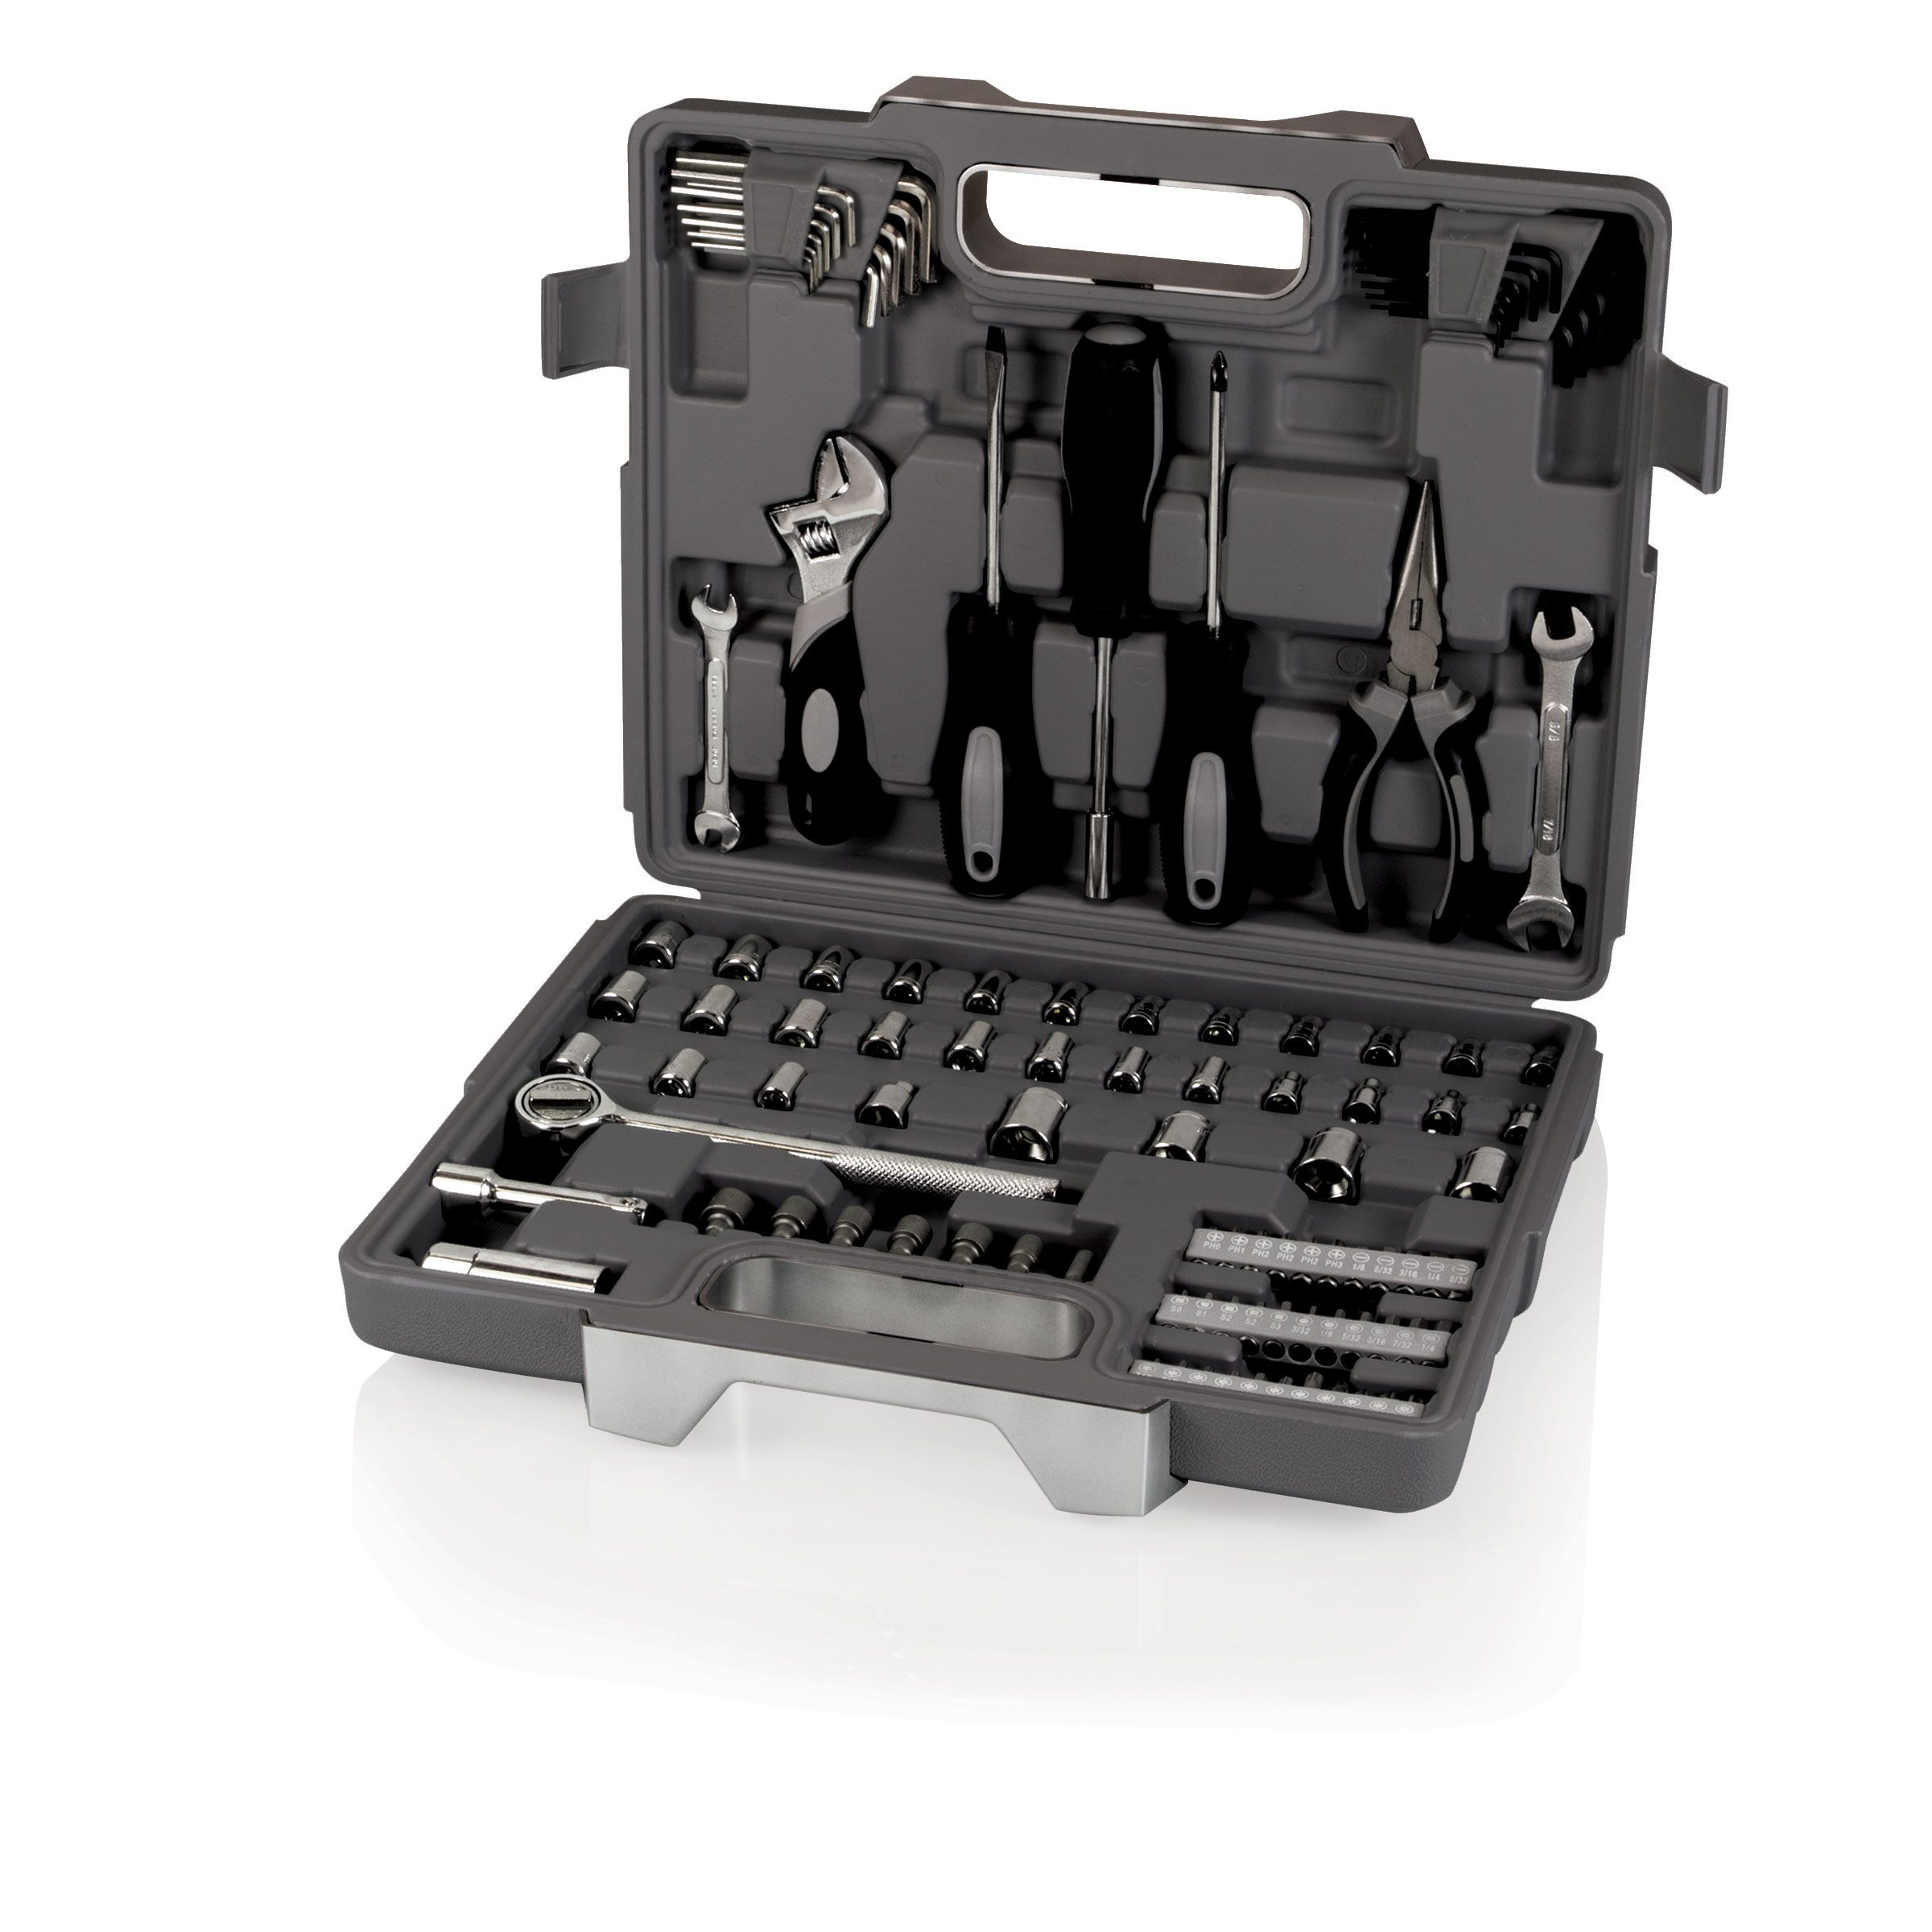 Omni 105-pc. Tool Kit